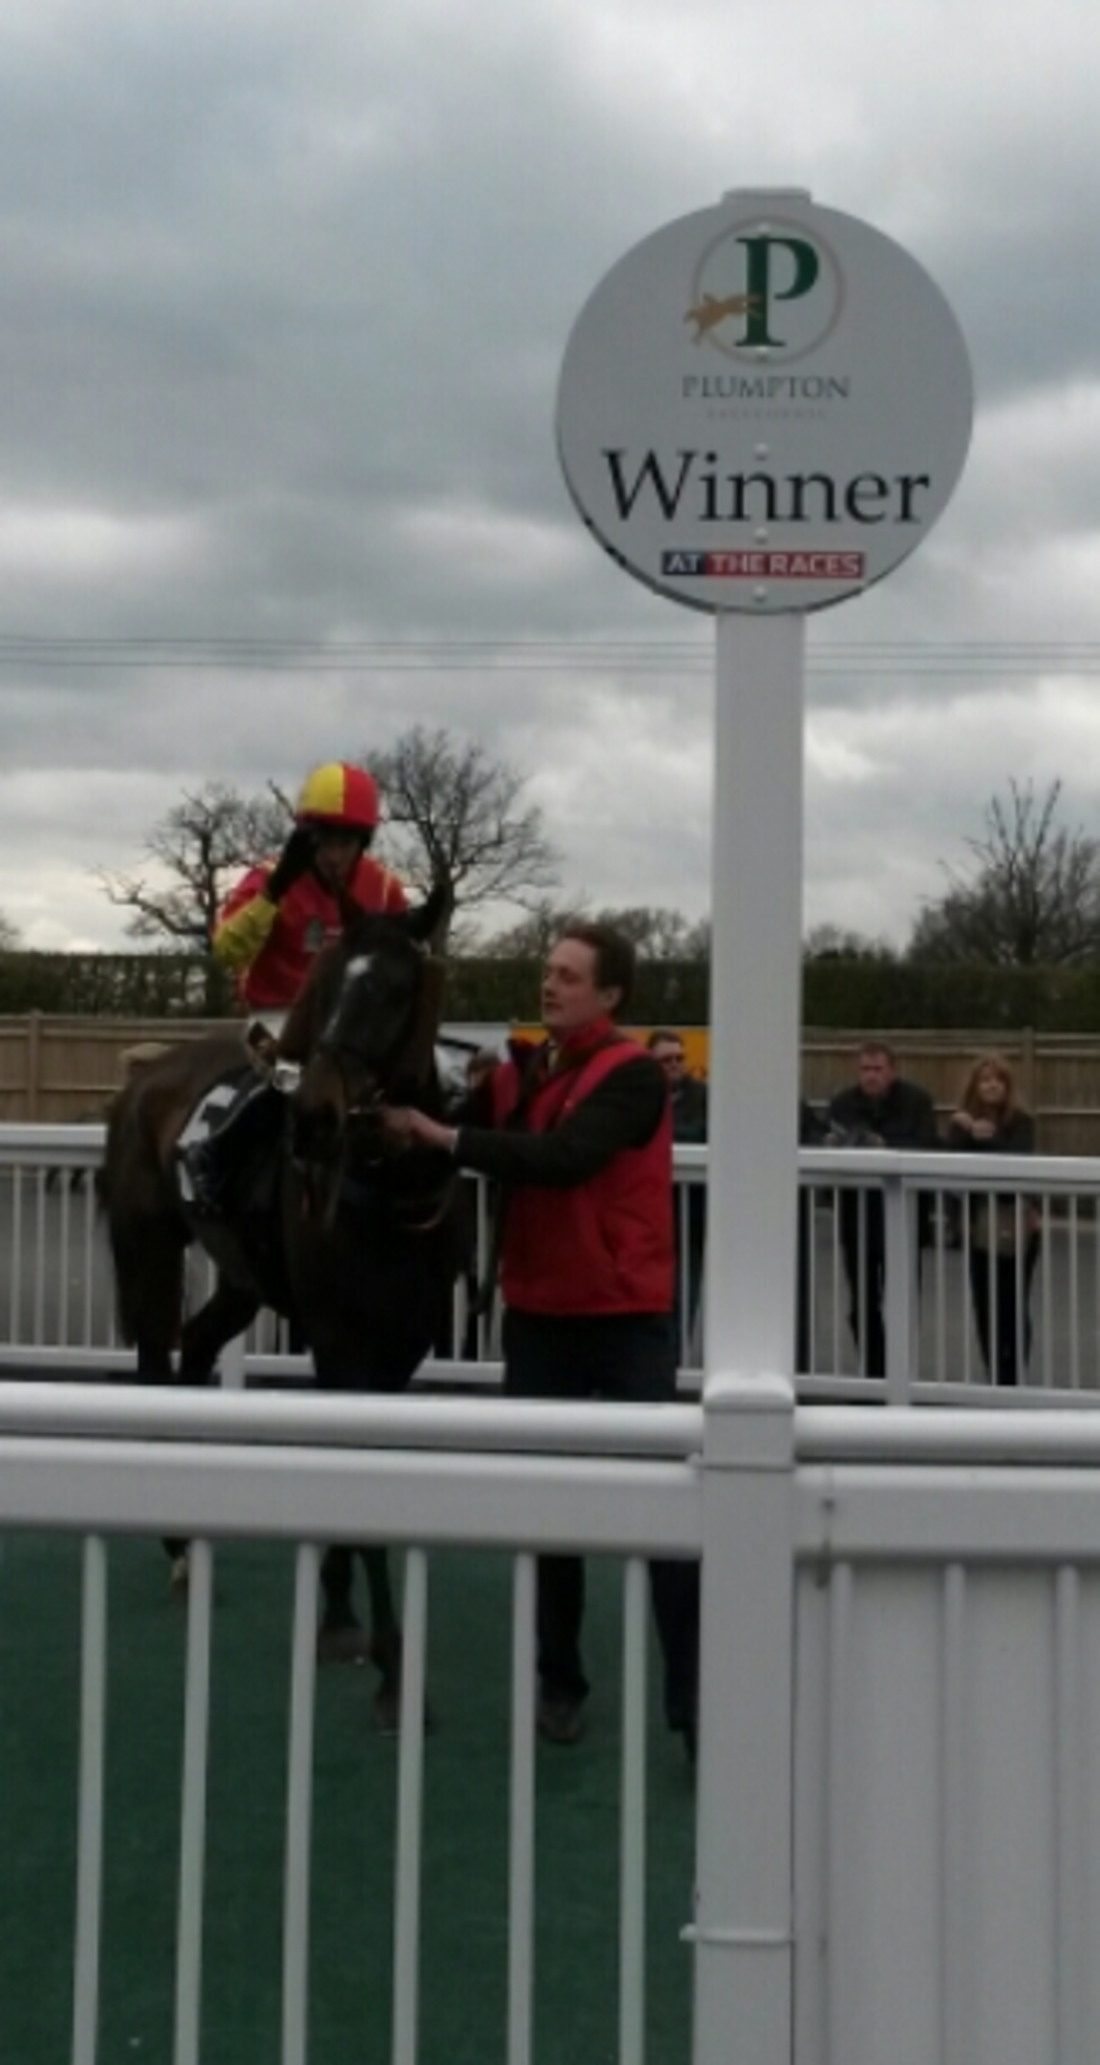 Ben and Tommy at Plumpton 5.4.15